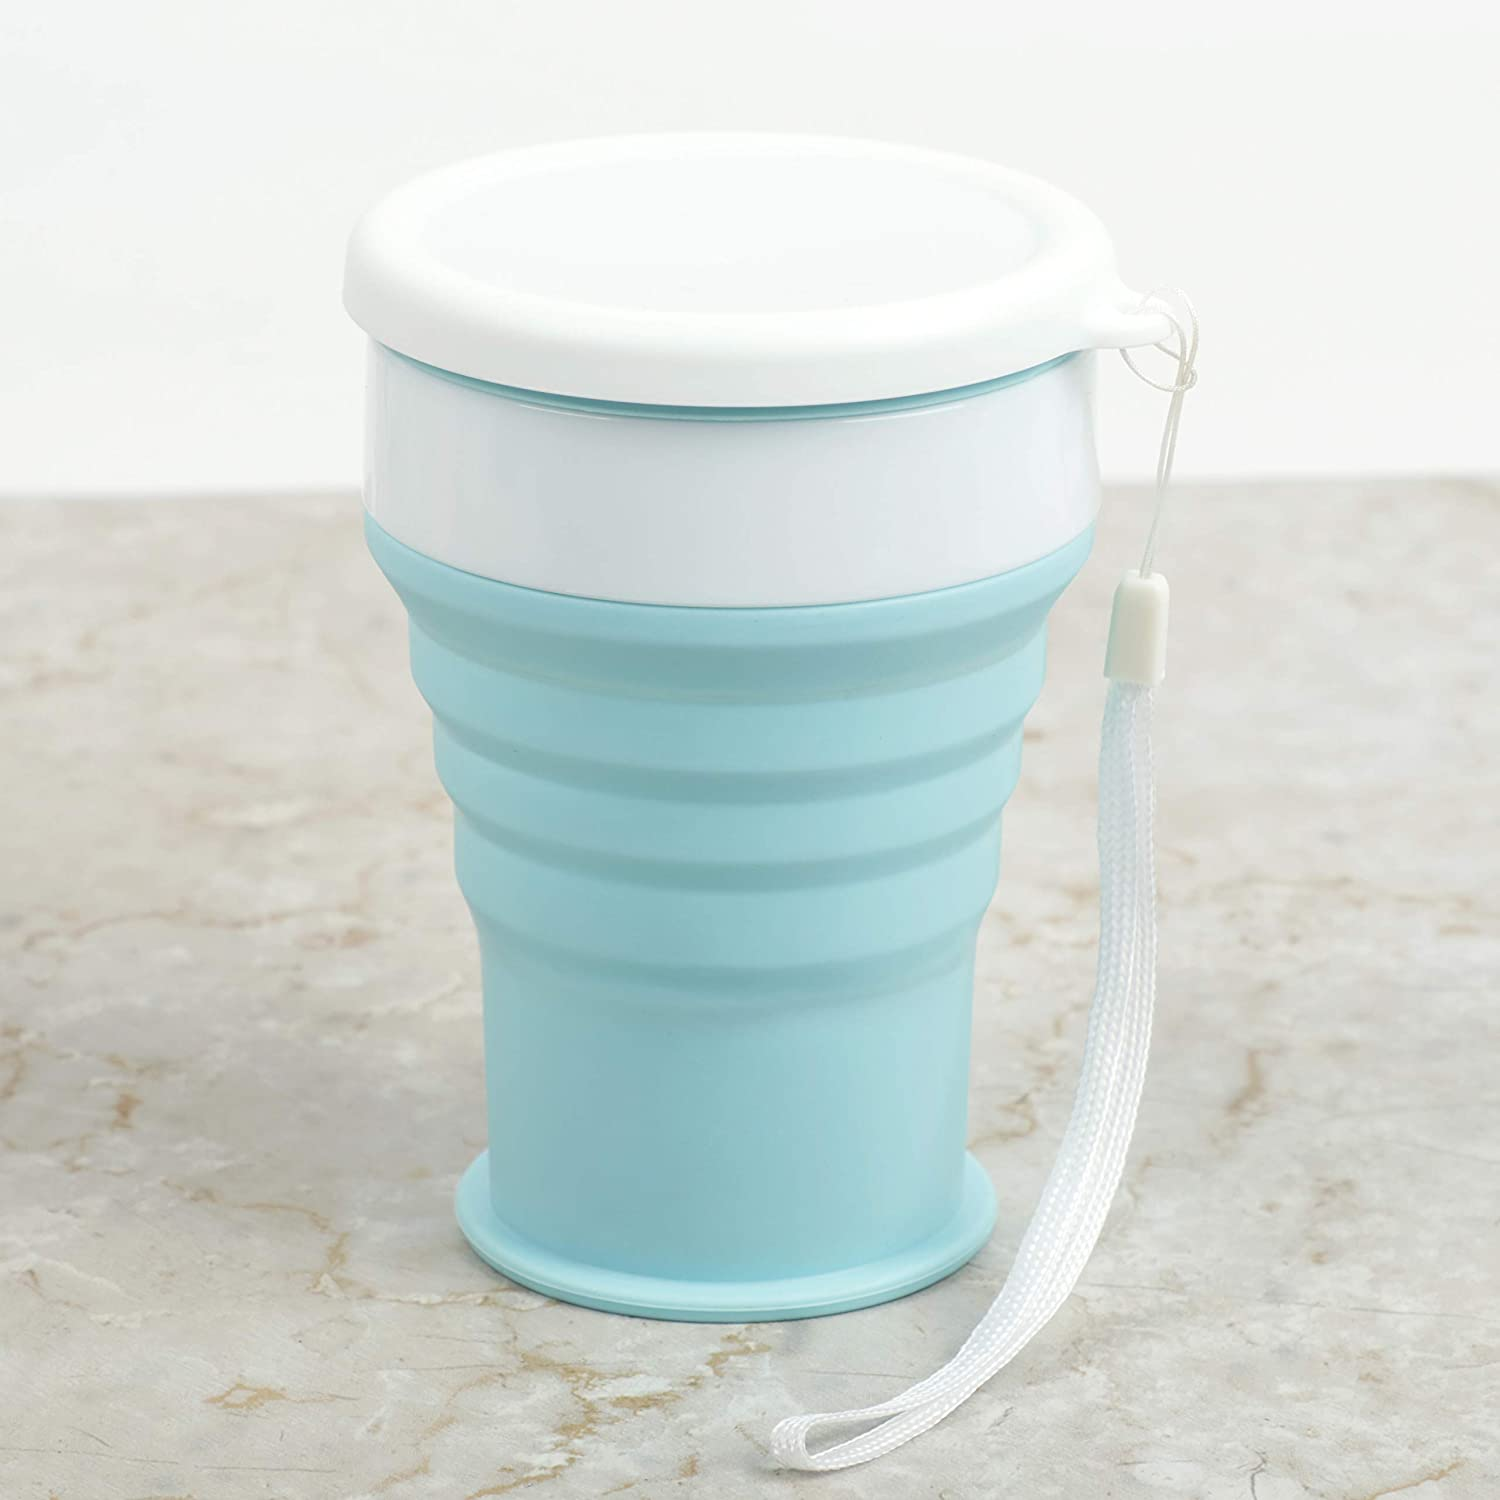 Stouge Collapsible Cups for Travel Camping Water Coffee Tea Mug Reusable Silicone Drinking Cup with Lid